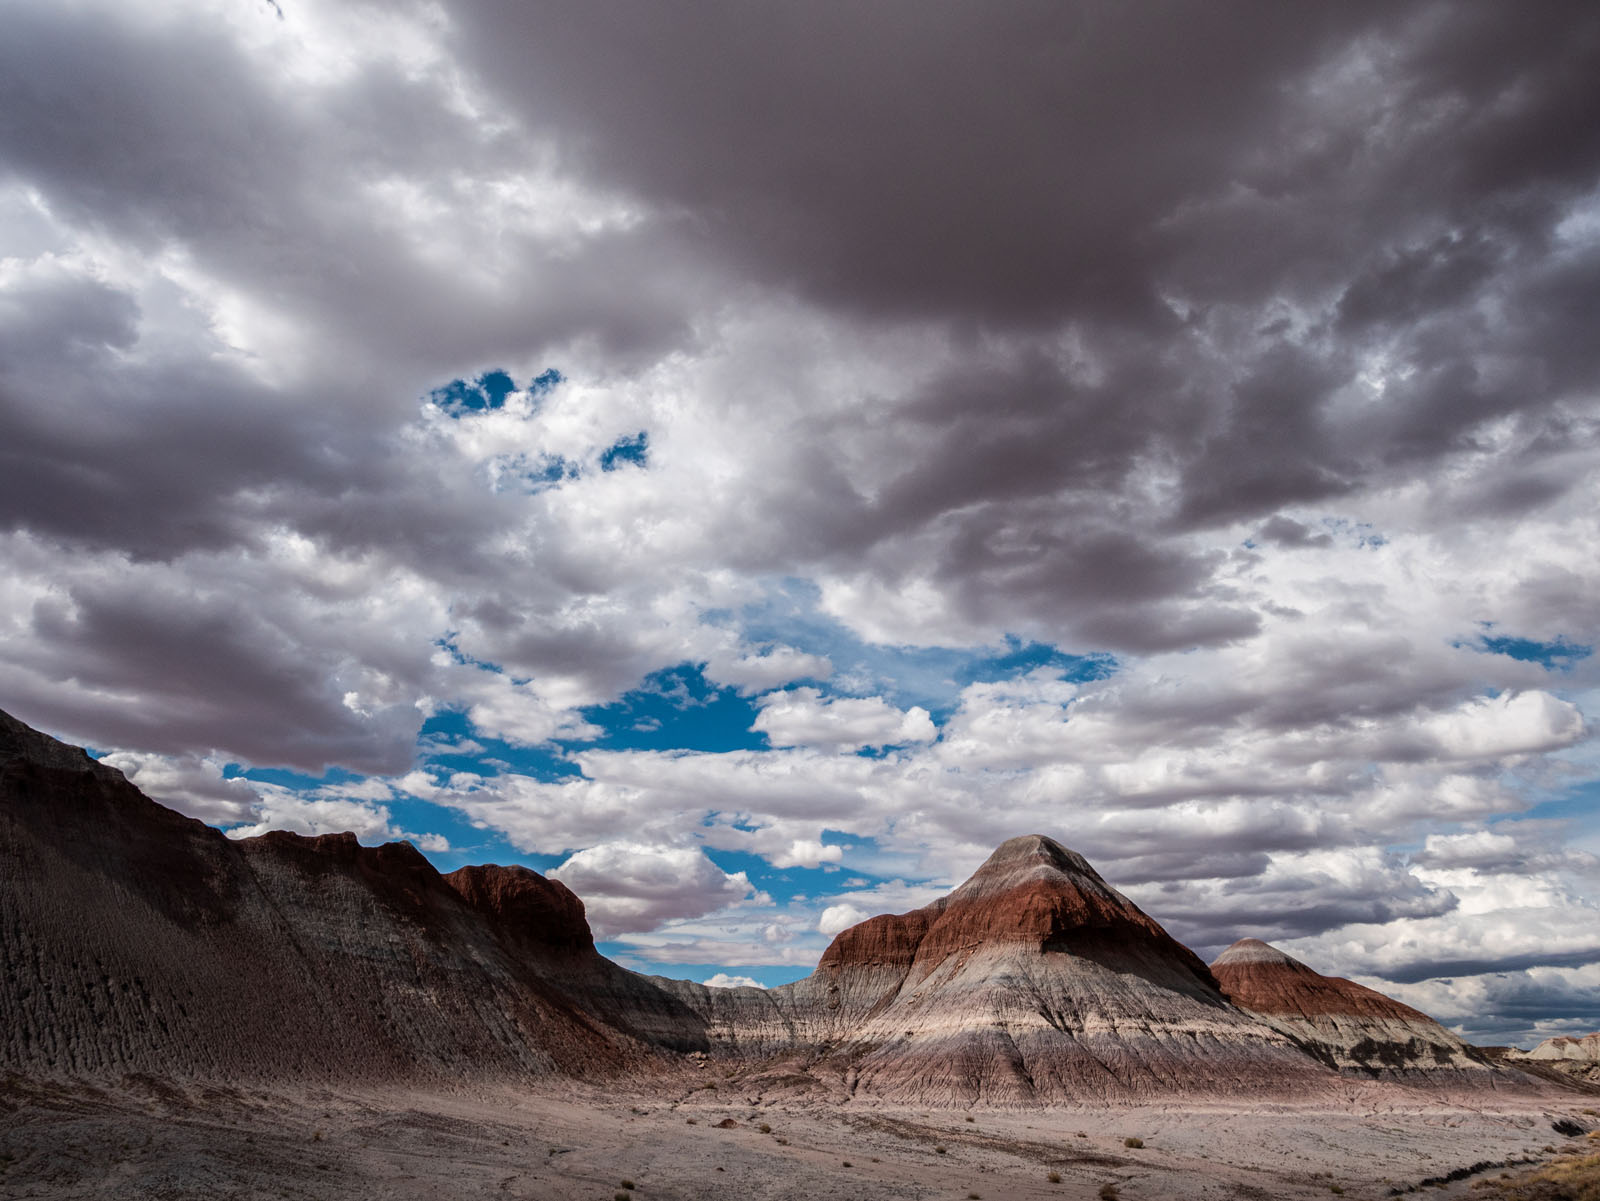 CO_Vacationmoon_PaintedDesert-1010486.jpg